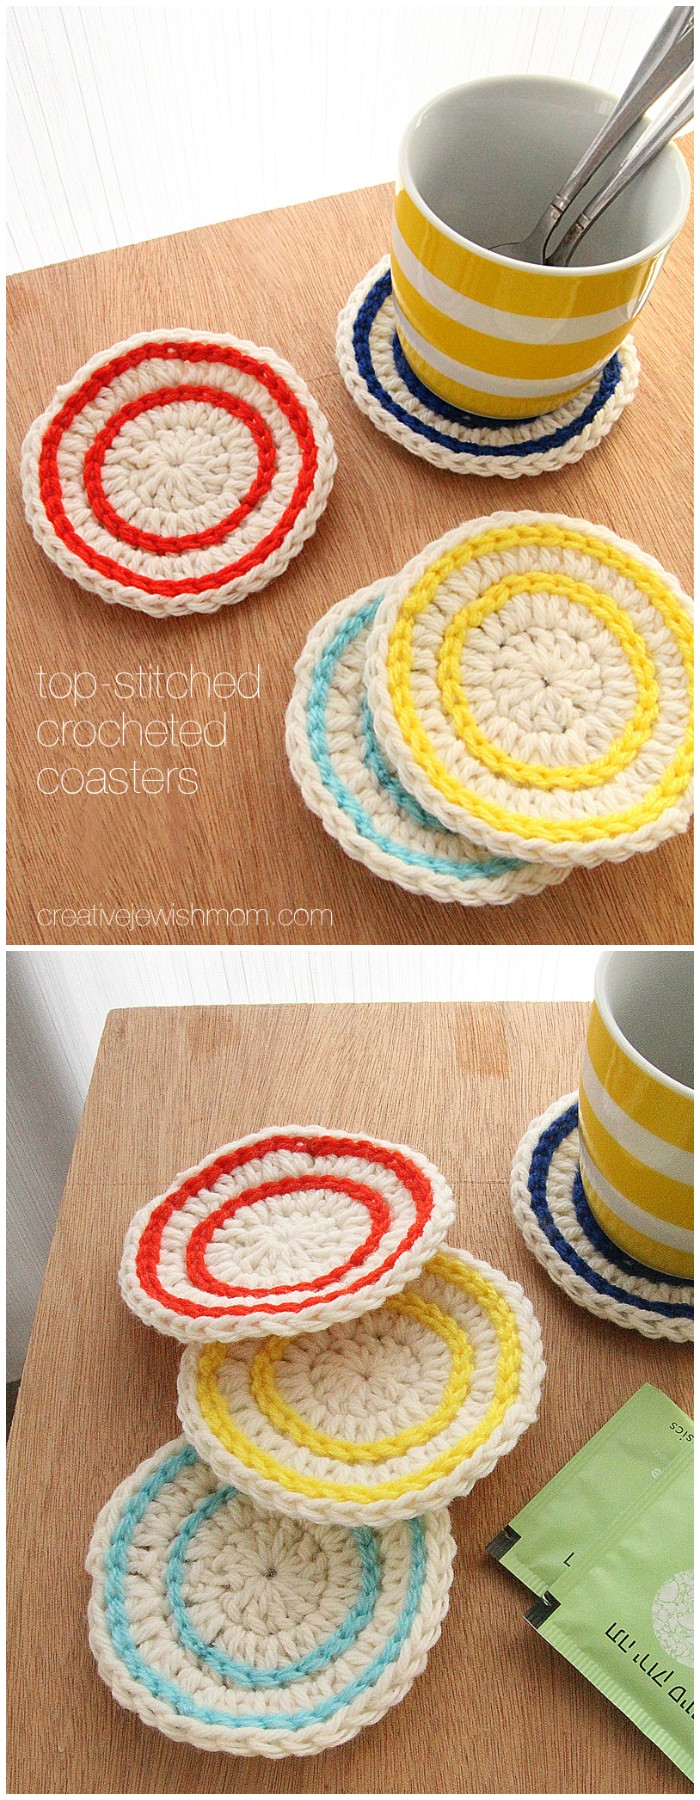 Super Simple Crochet Coasters